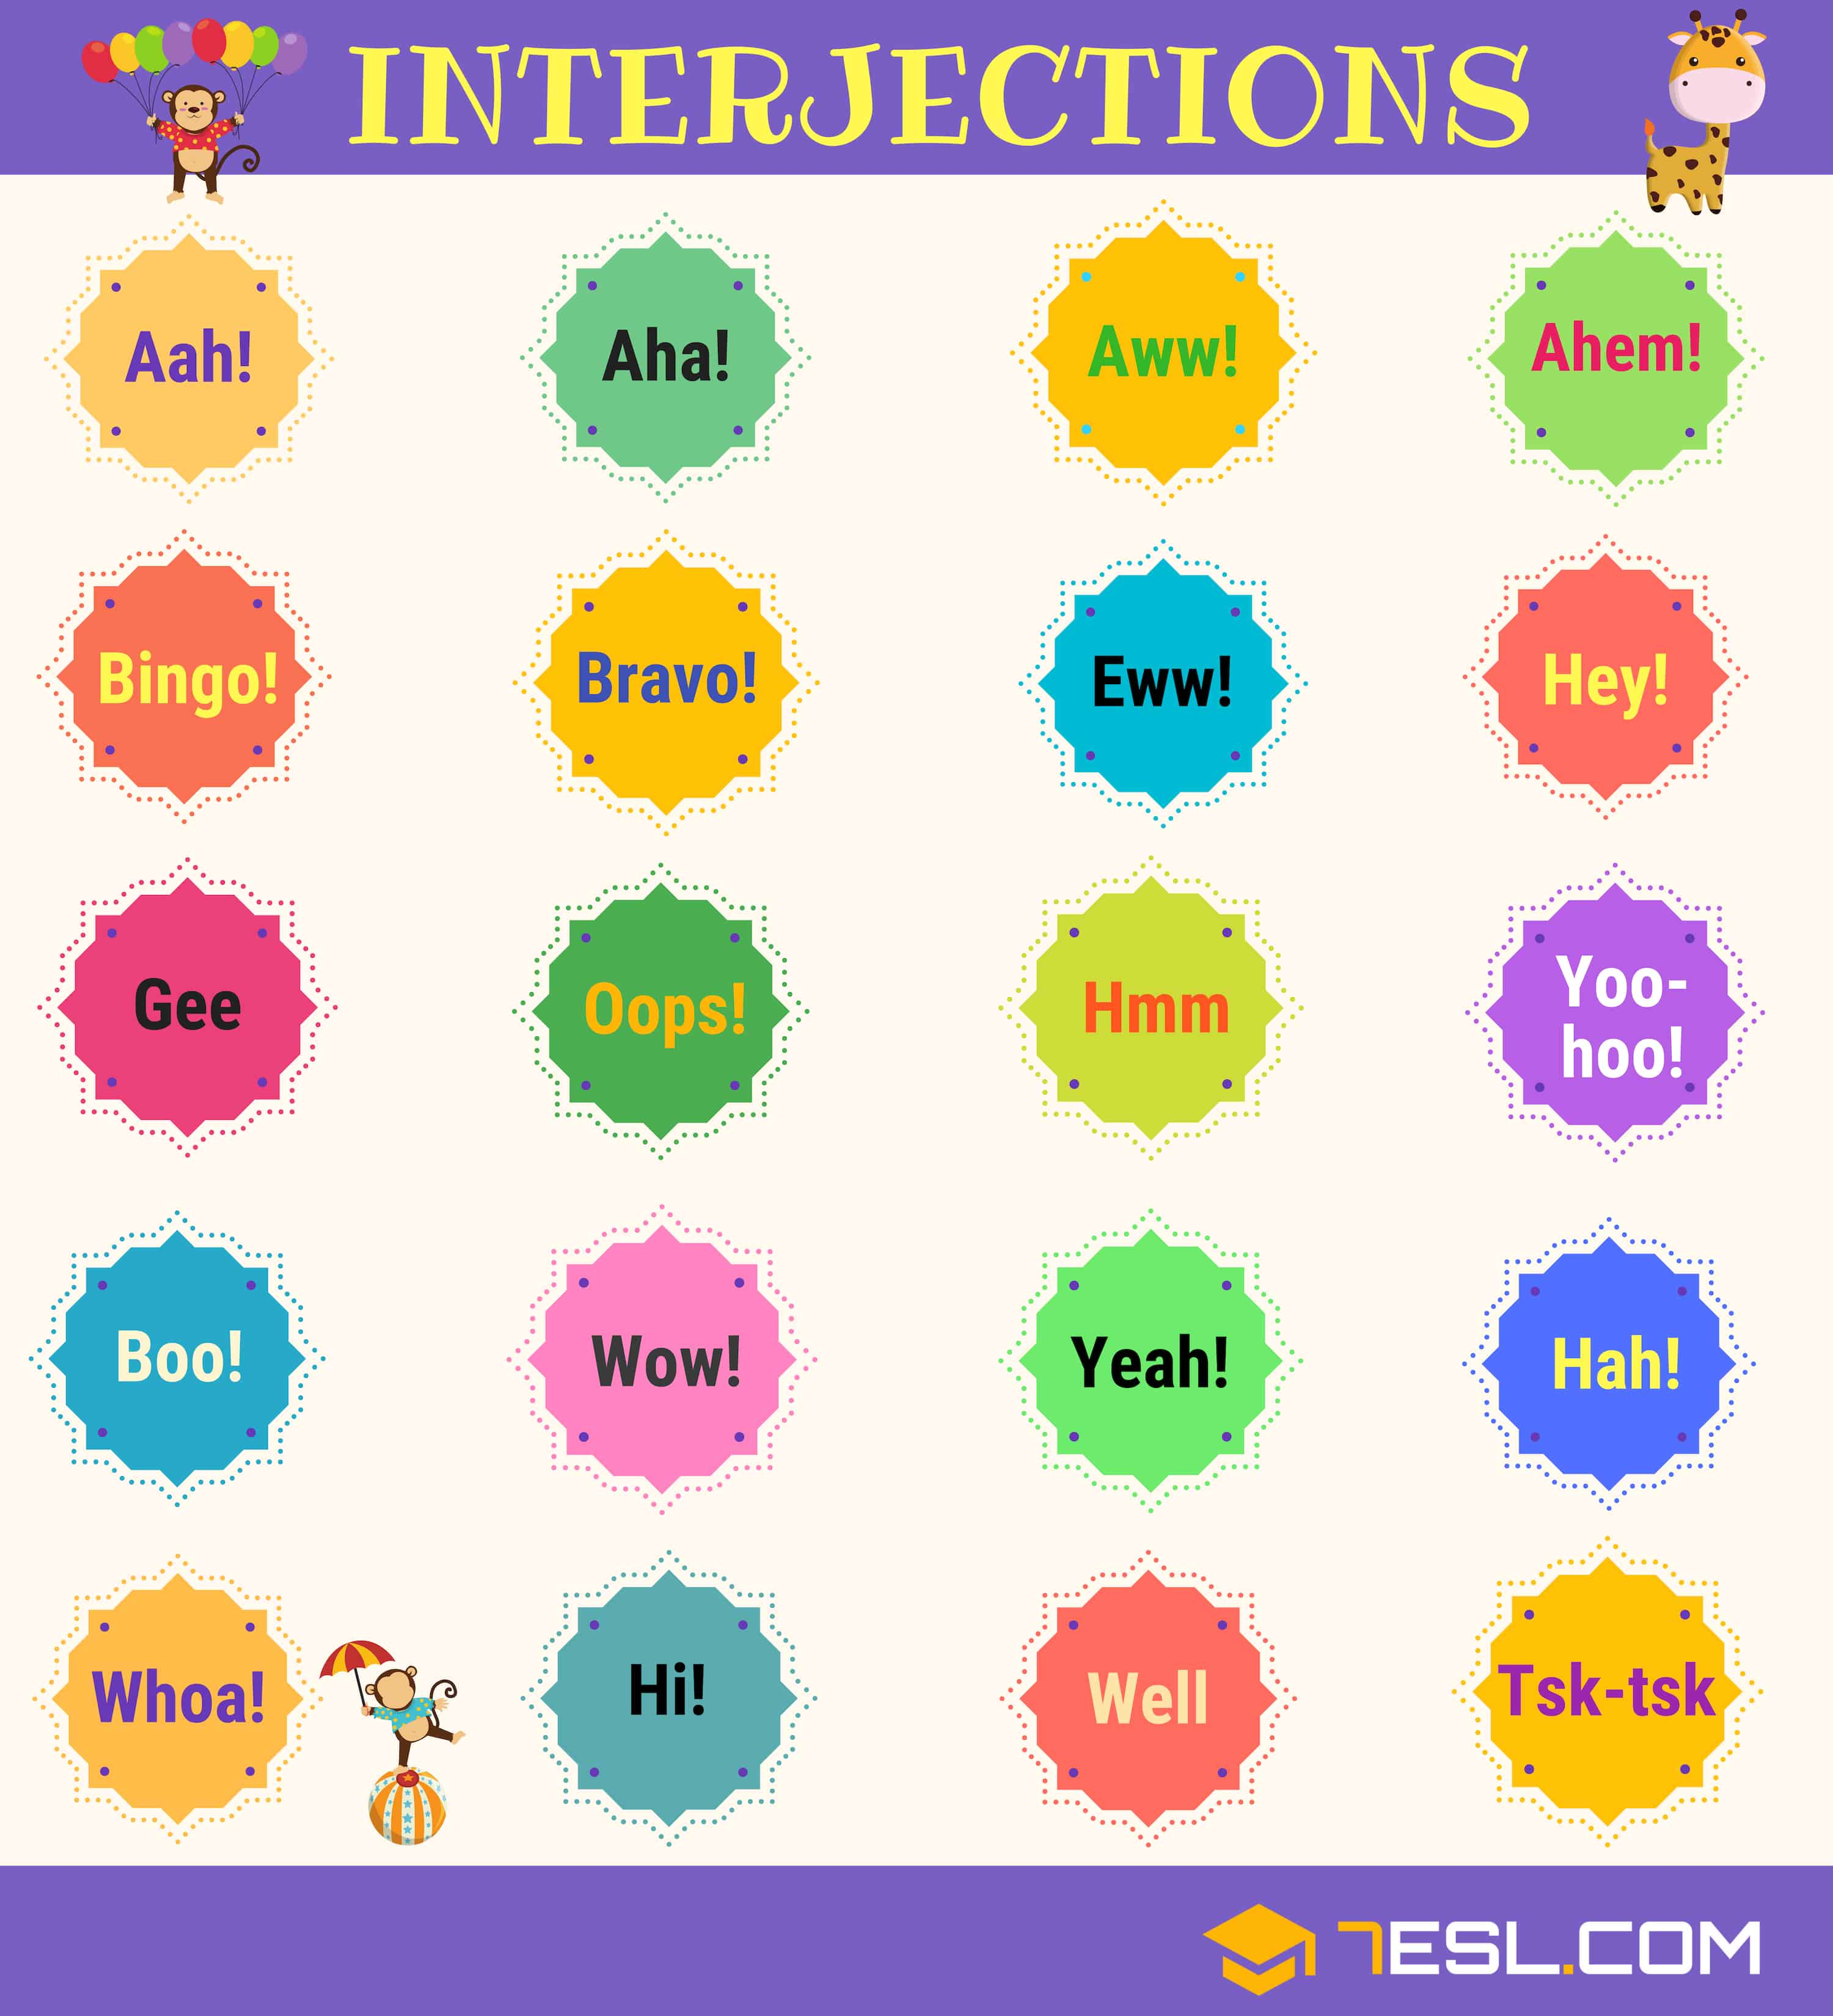 List of 60+ Interjections with Definition & Useful Examples - 7 E S L